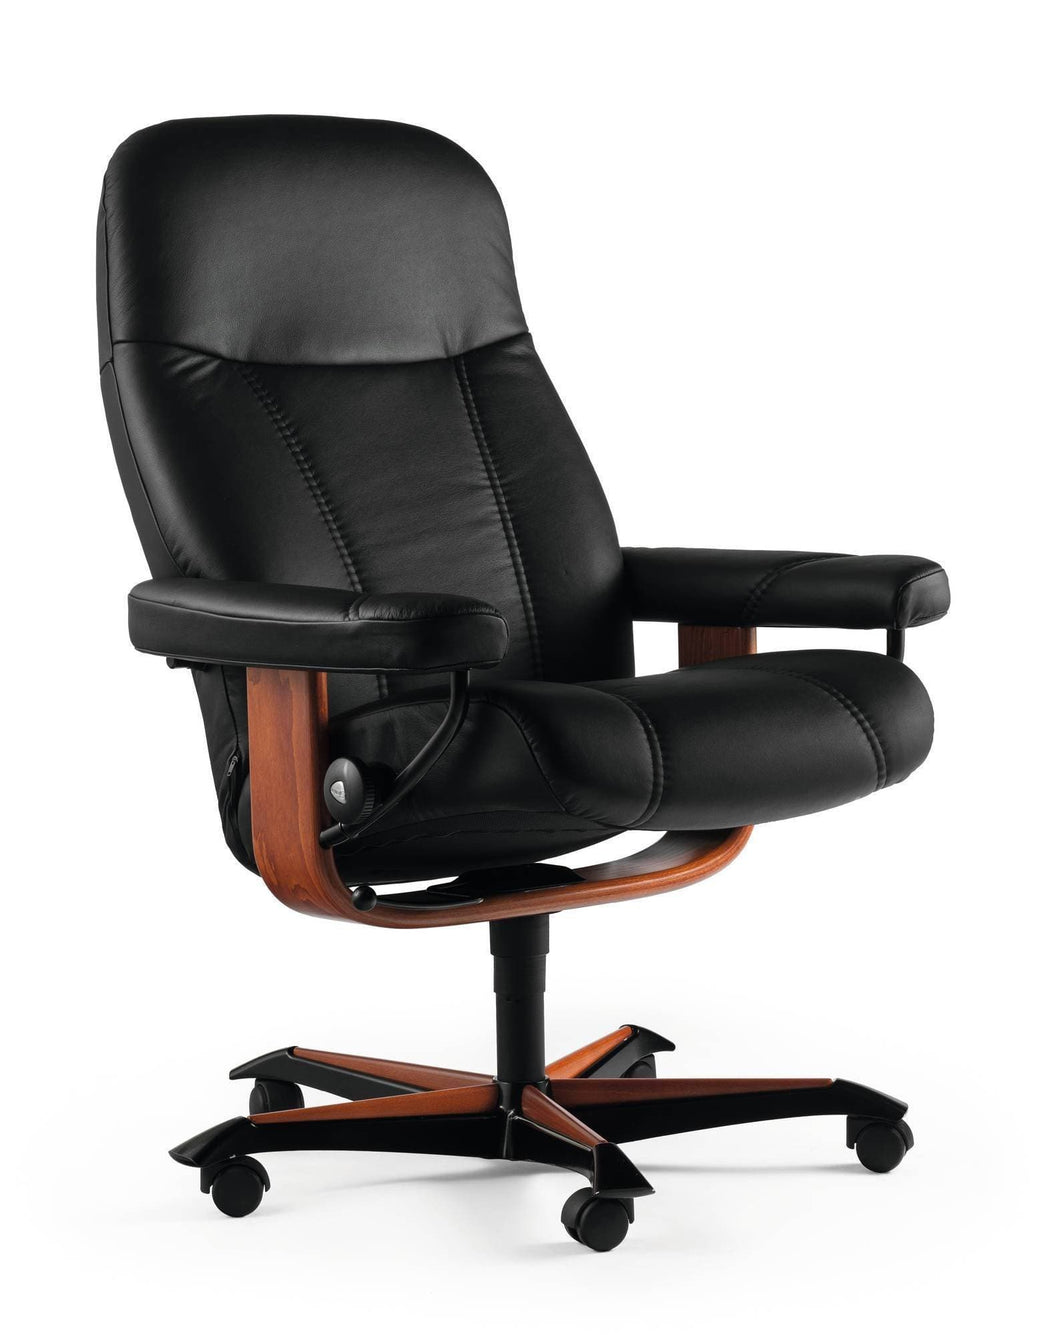 Stressless Consul Stressless Office Recliner